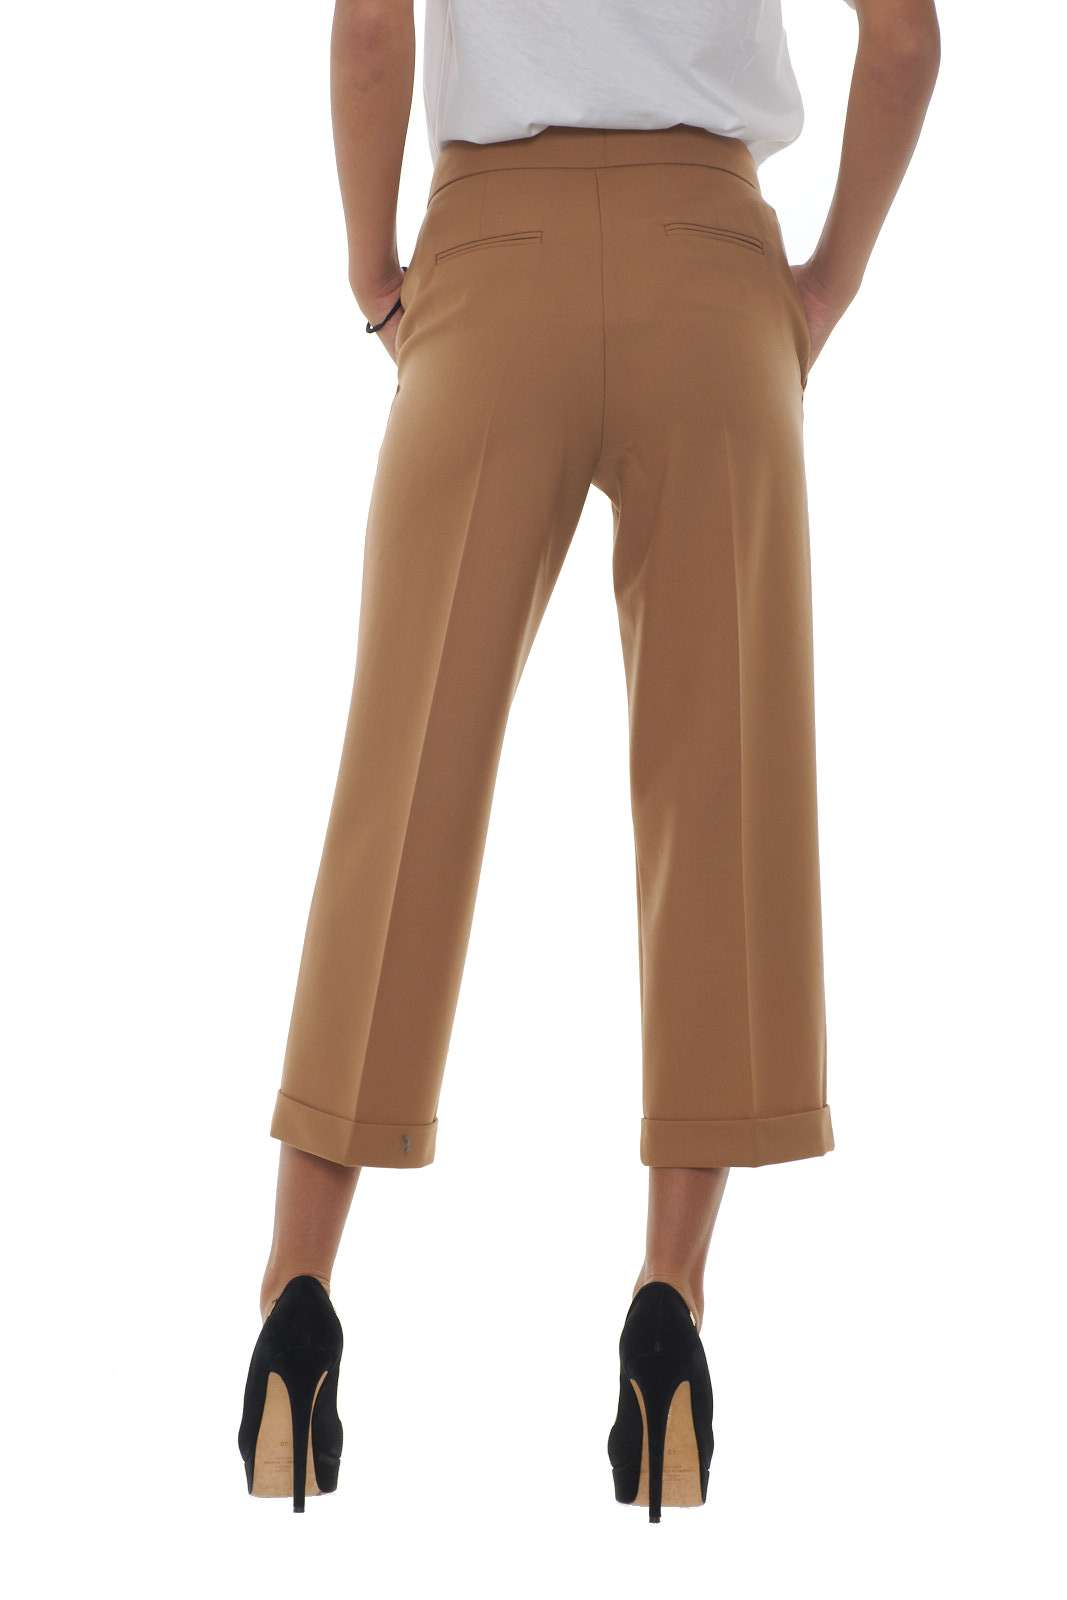 https://www.parmax.com/media/catalog/product/a/i/AI-outlet_parmax-pantaloni-donna-Twin-Set-192TT2455-C.jpg